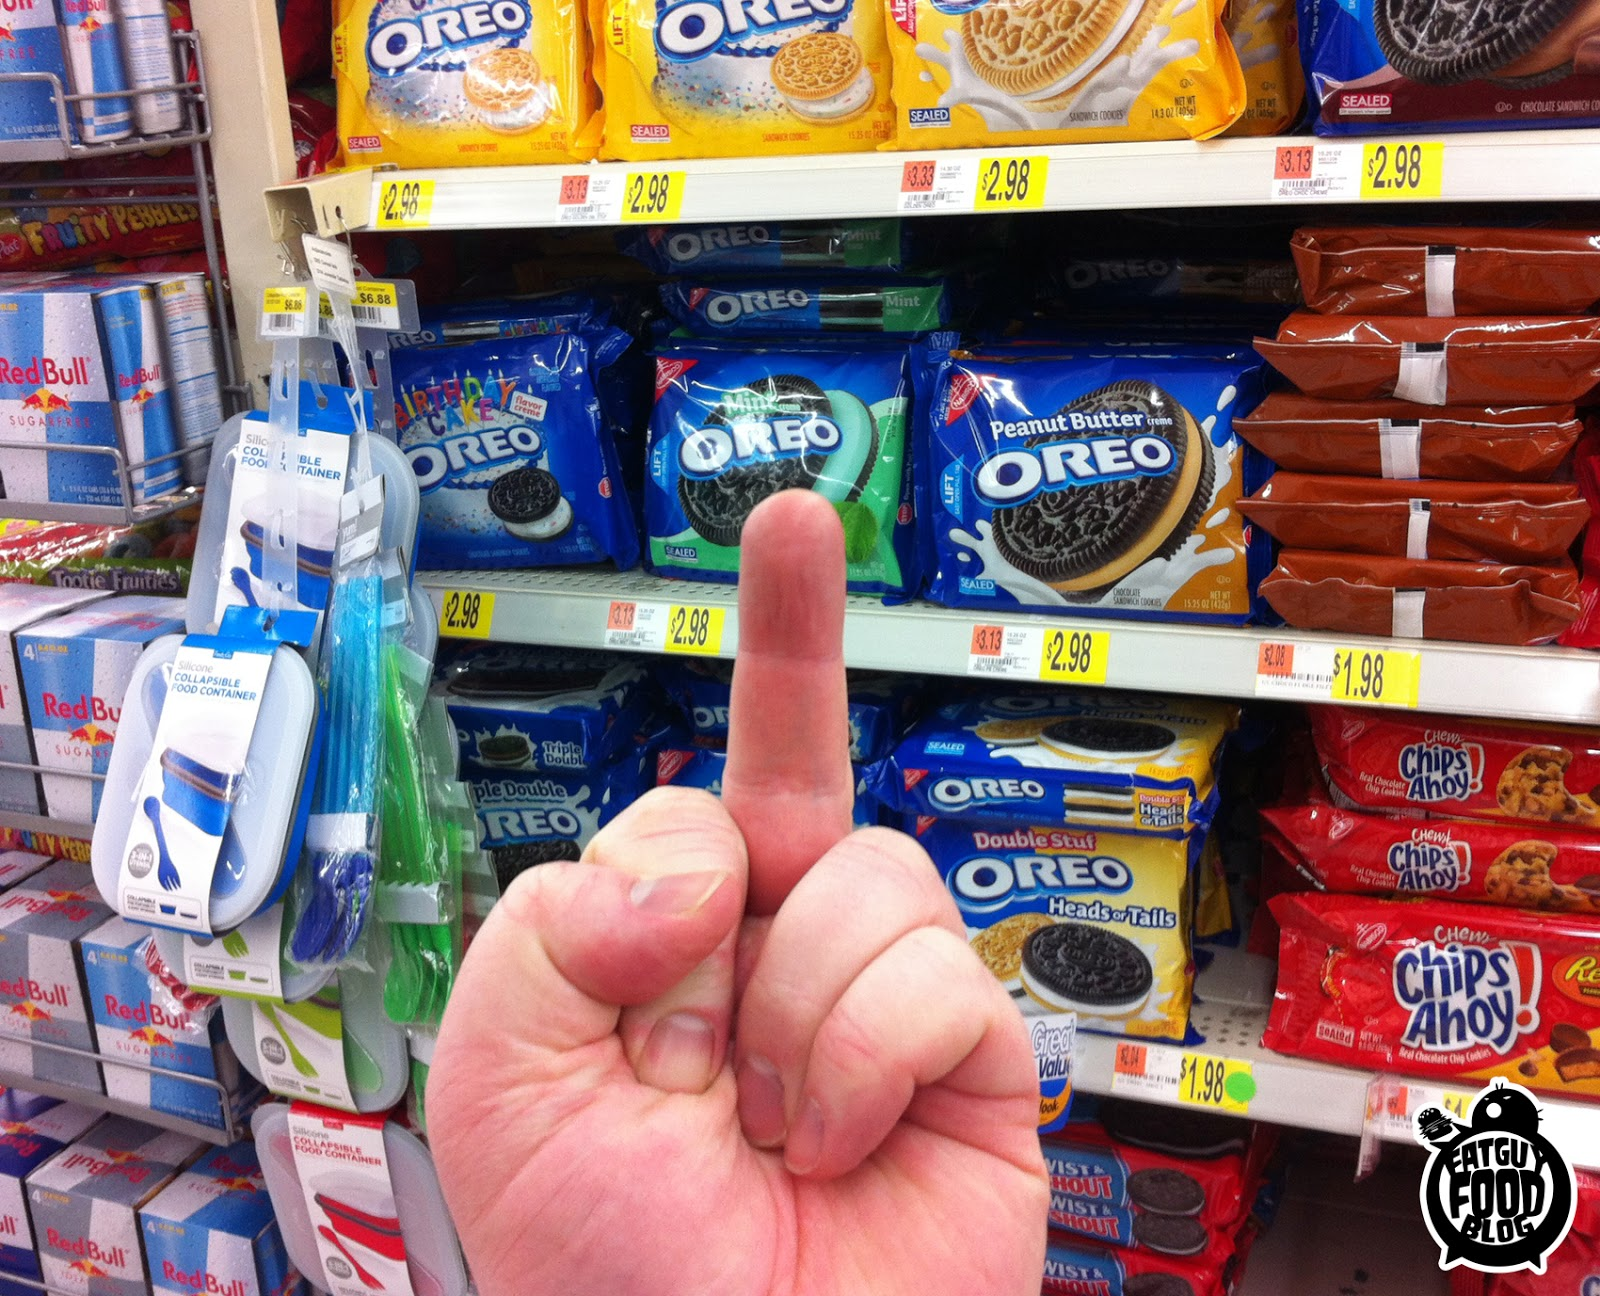 Limited Edition Oreo Flavors